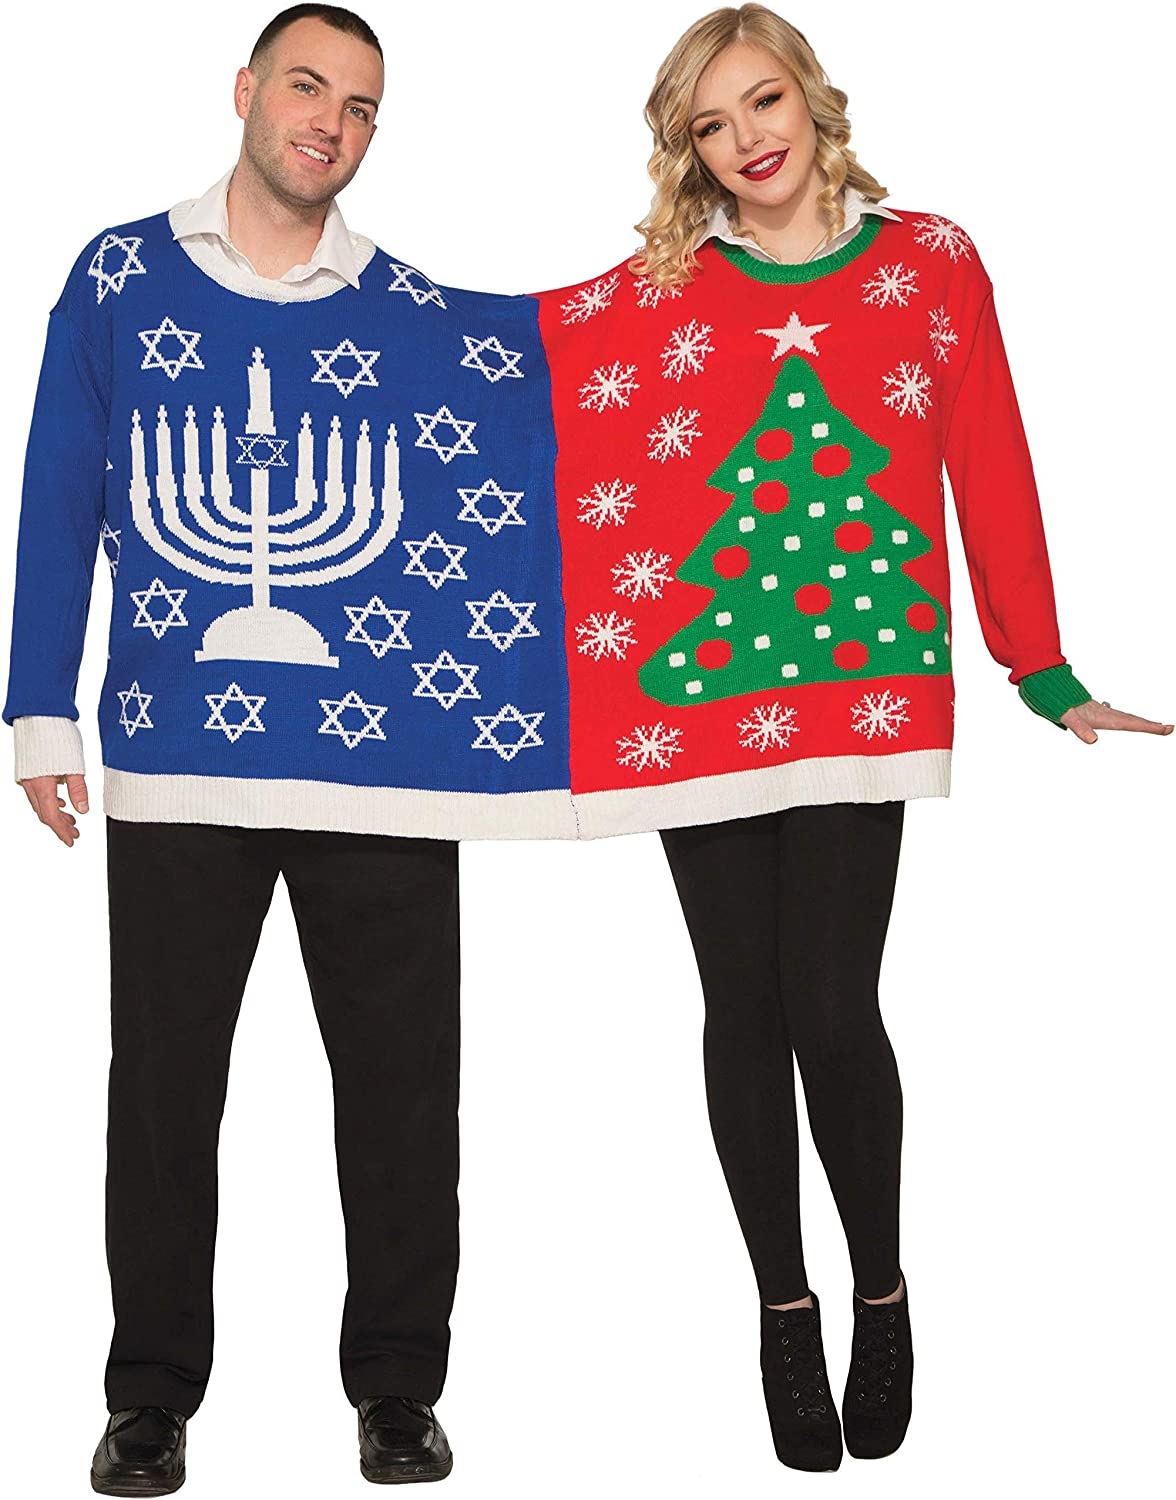 Forum Novelties Ugly Christmas and Chanukah Sweater for Two, Multi